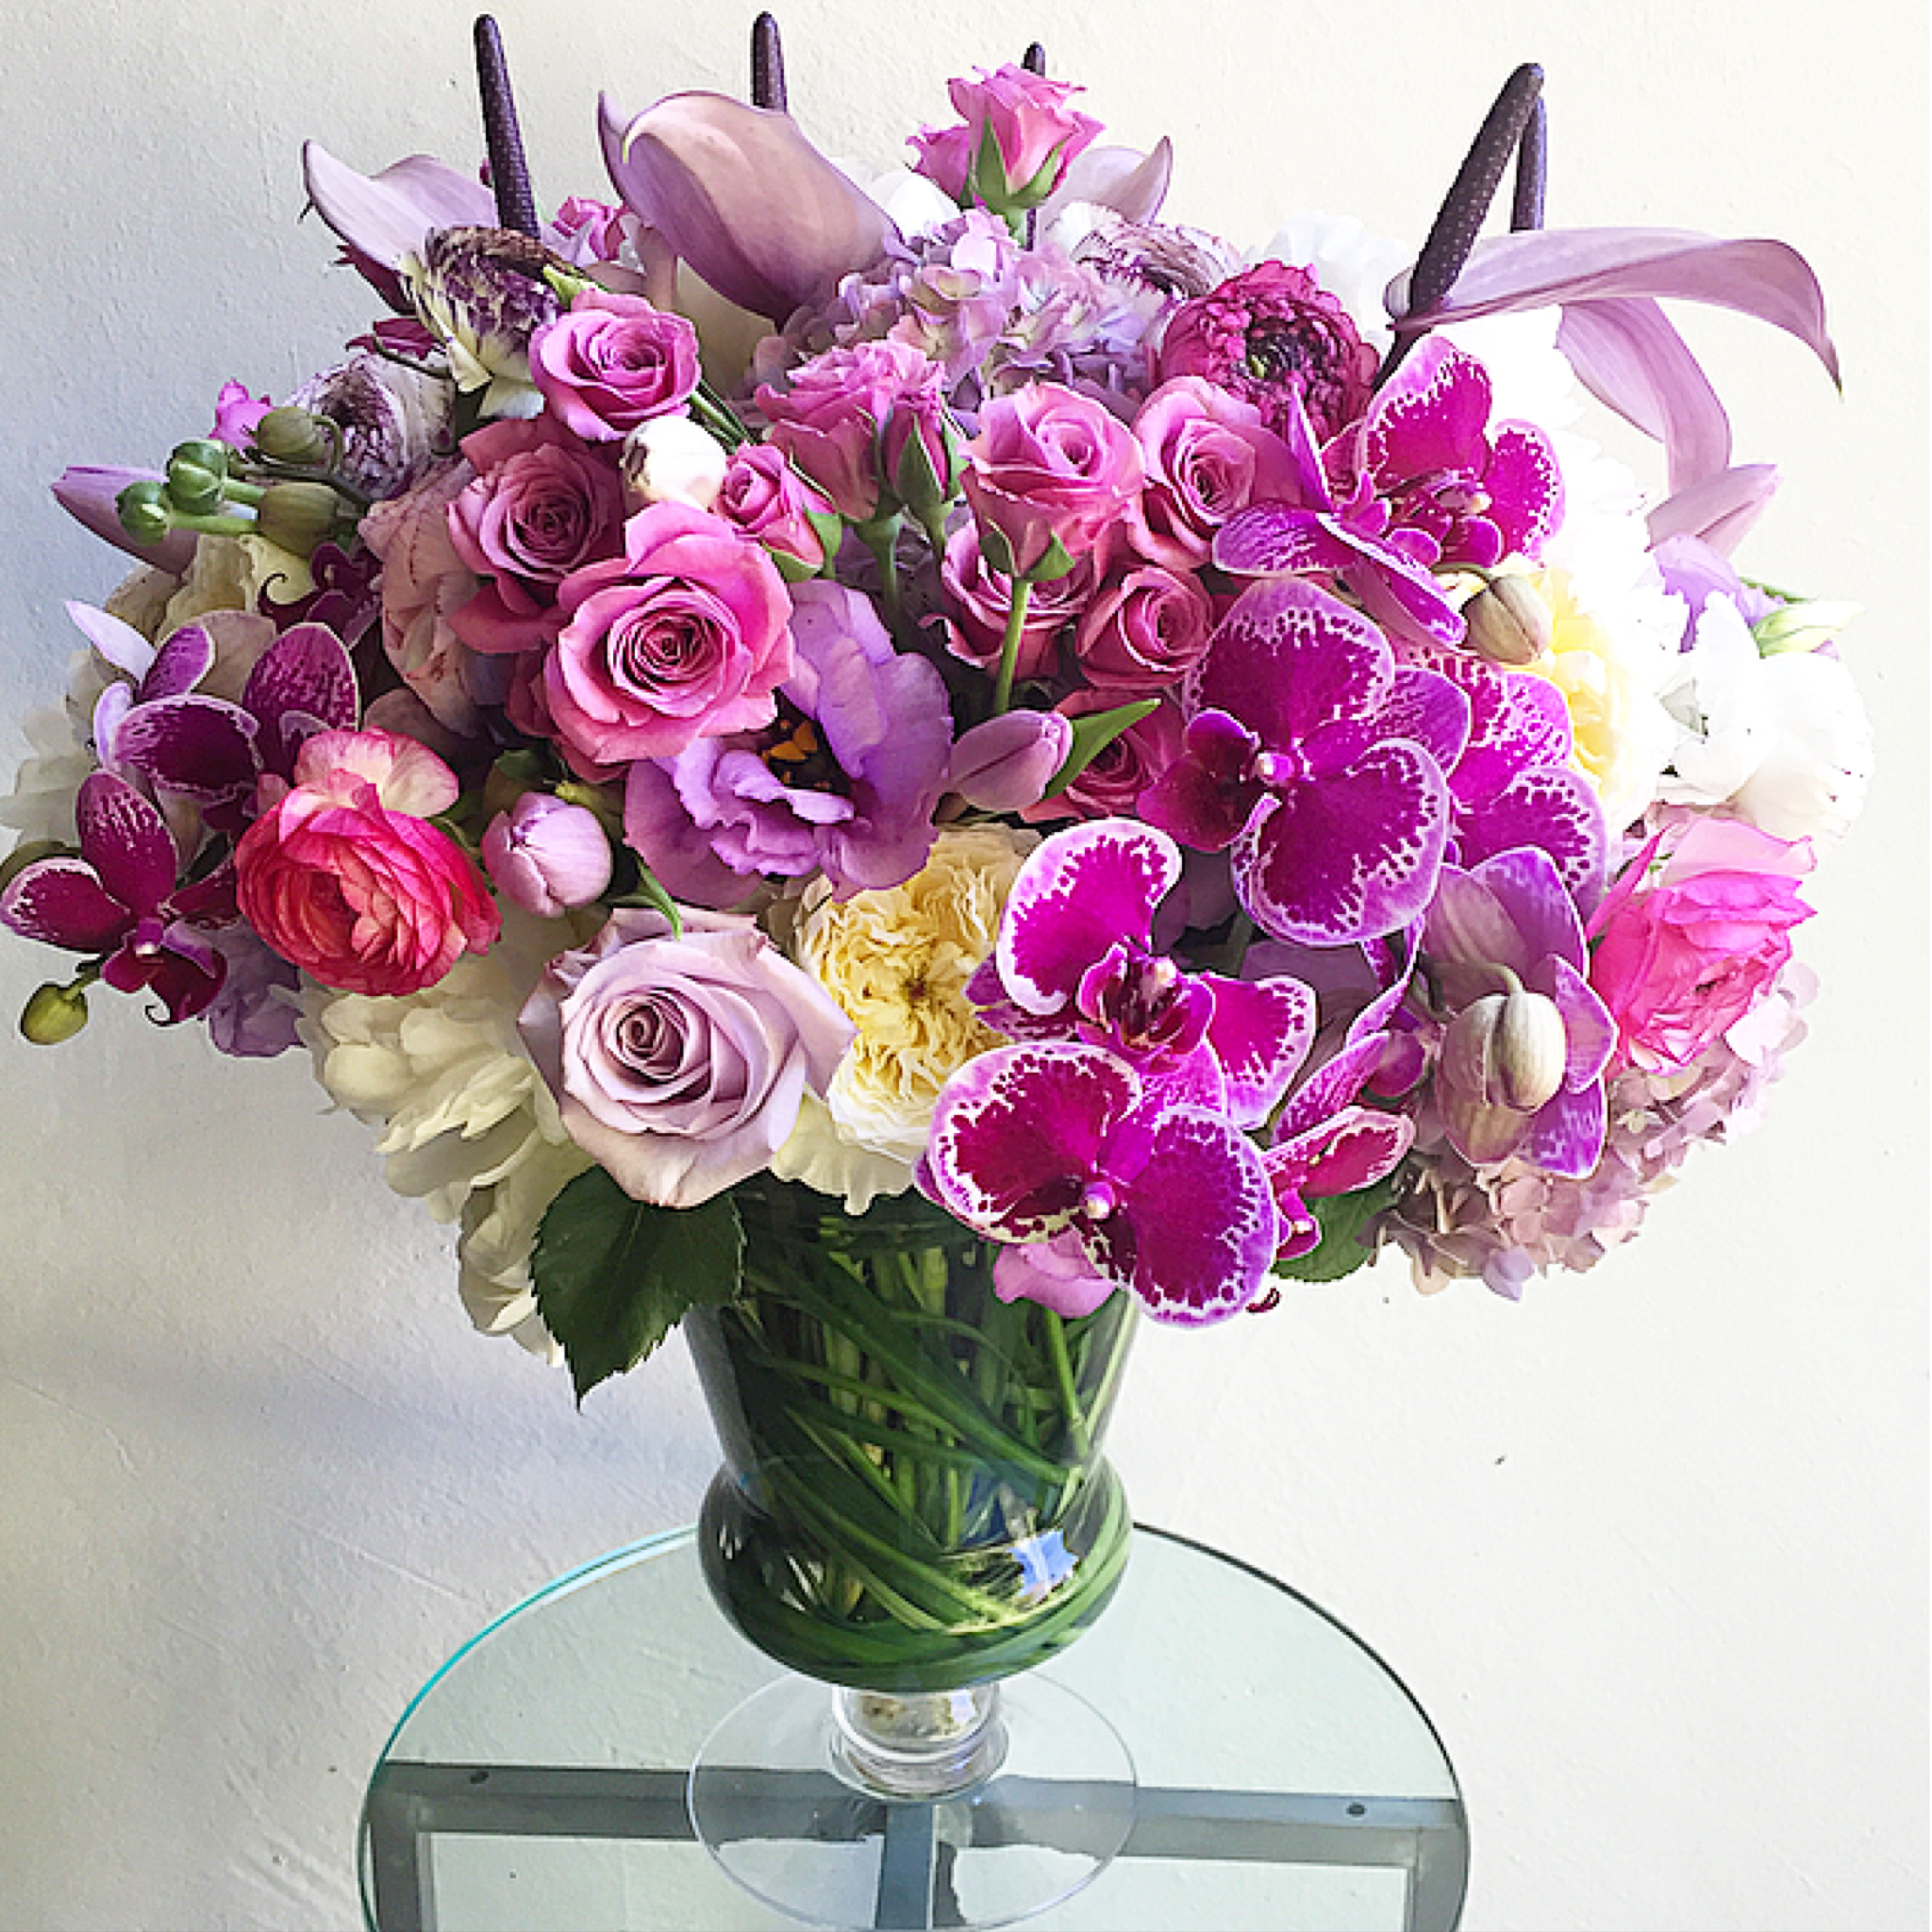 Send The Real Deal Arrangement. in Los Angeles, CA from